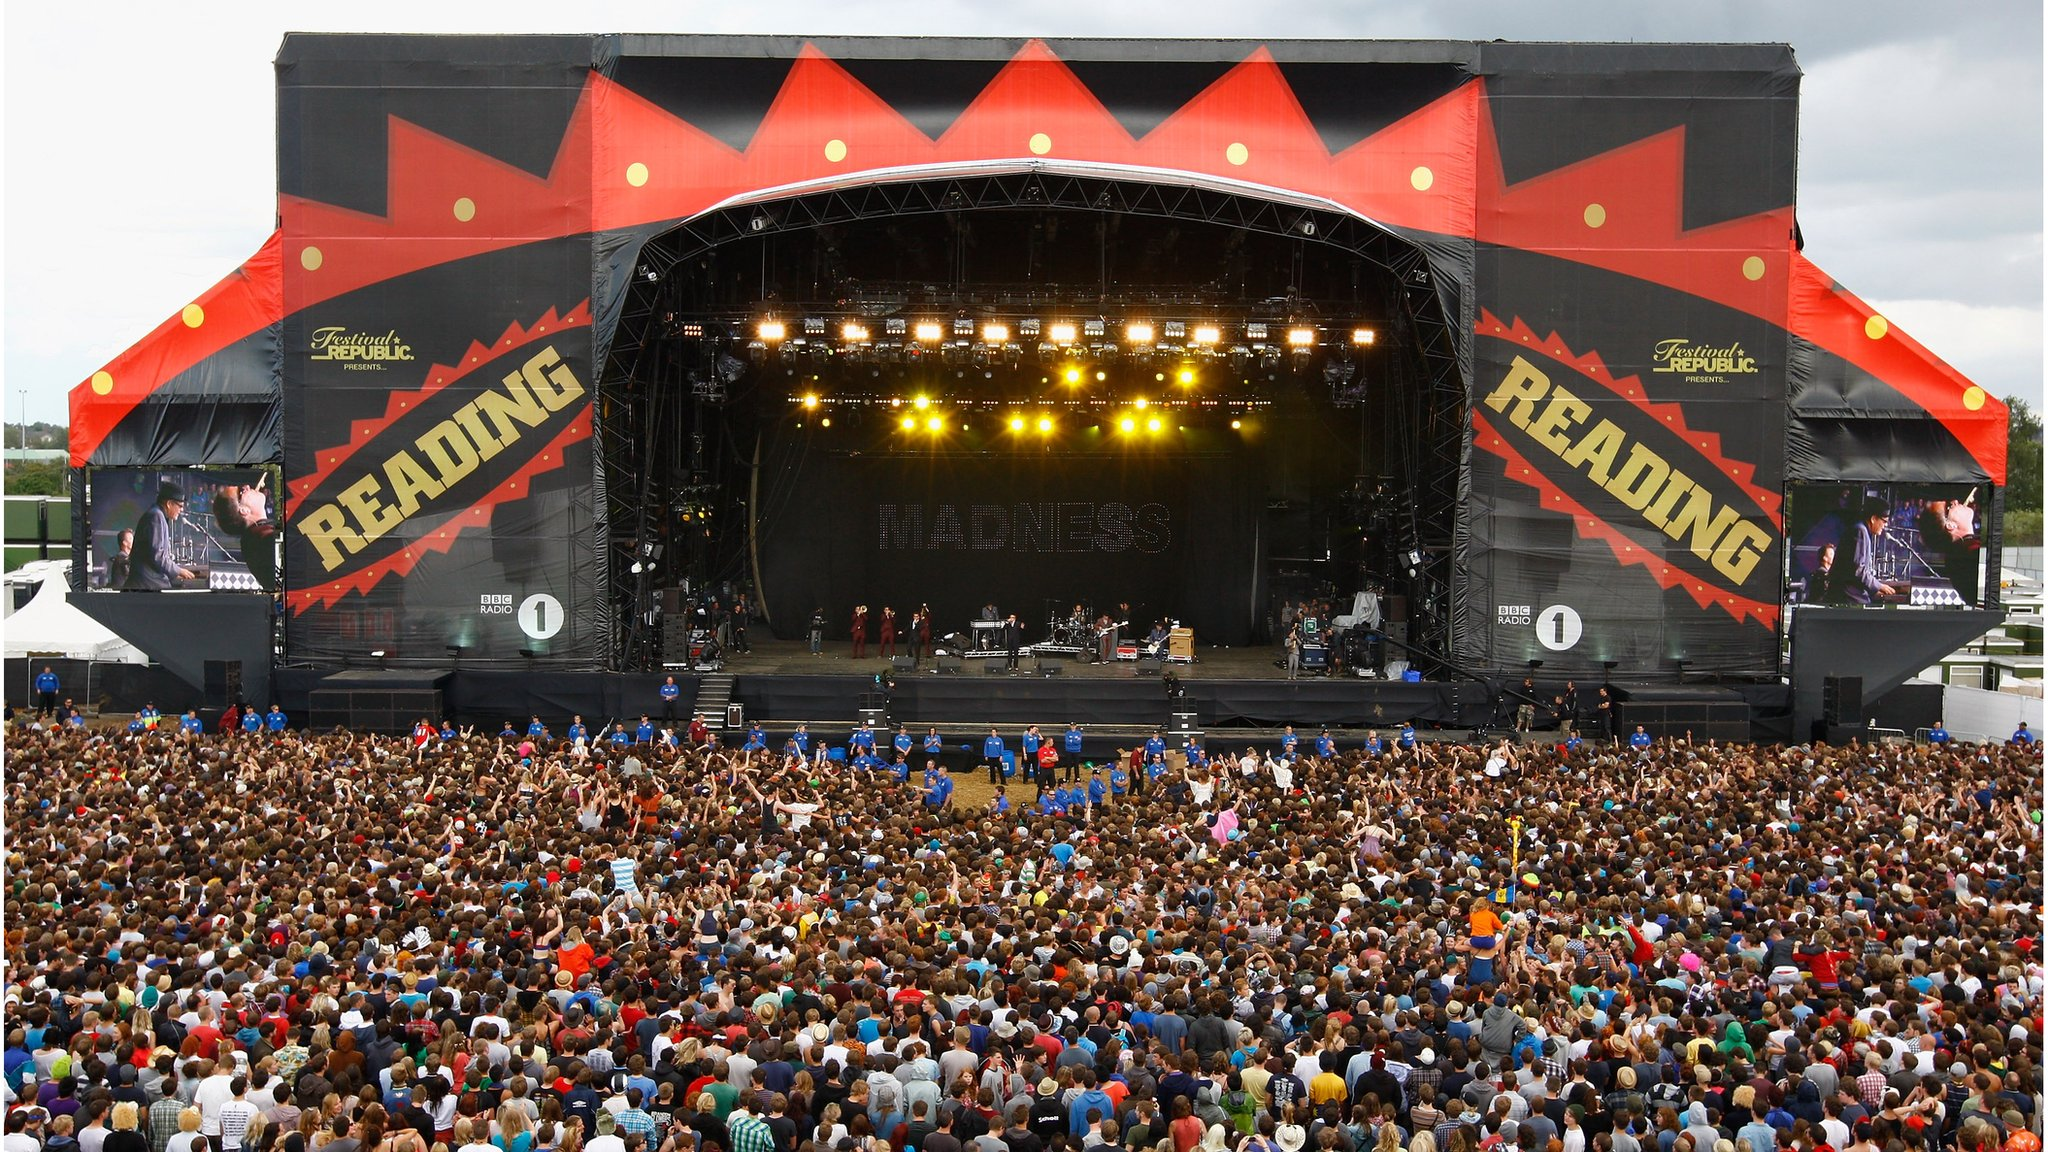 BBC News - Reading and Leeds: Kings of Leon and Fall Out Boy headline